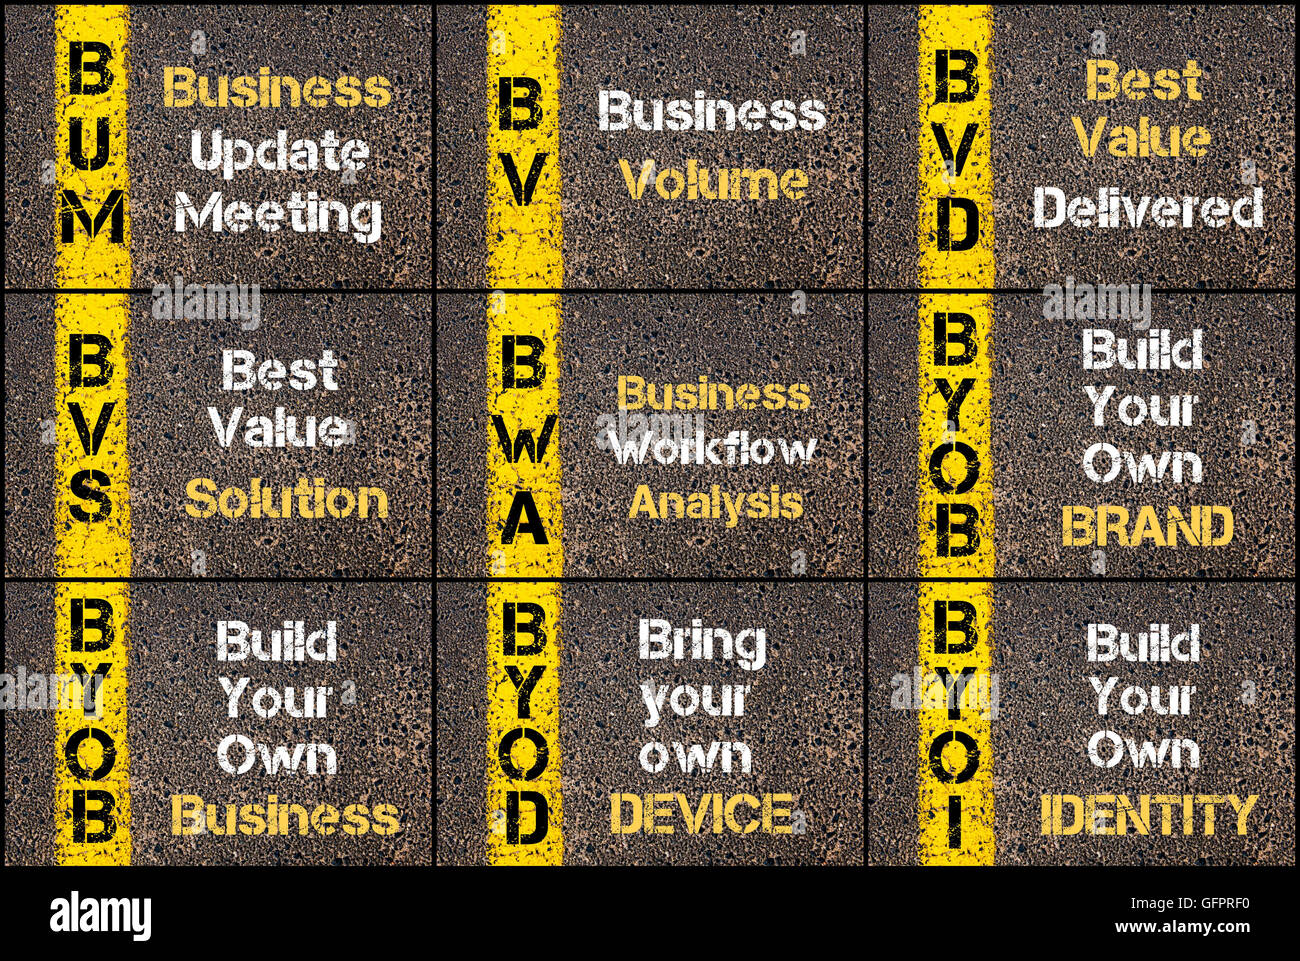 Photo collage of Business Acronyms written over road marking yellow paint line. BUM, BV, BVD, BVS, BWA, BYOB, BYOB, - Stock Image